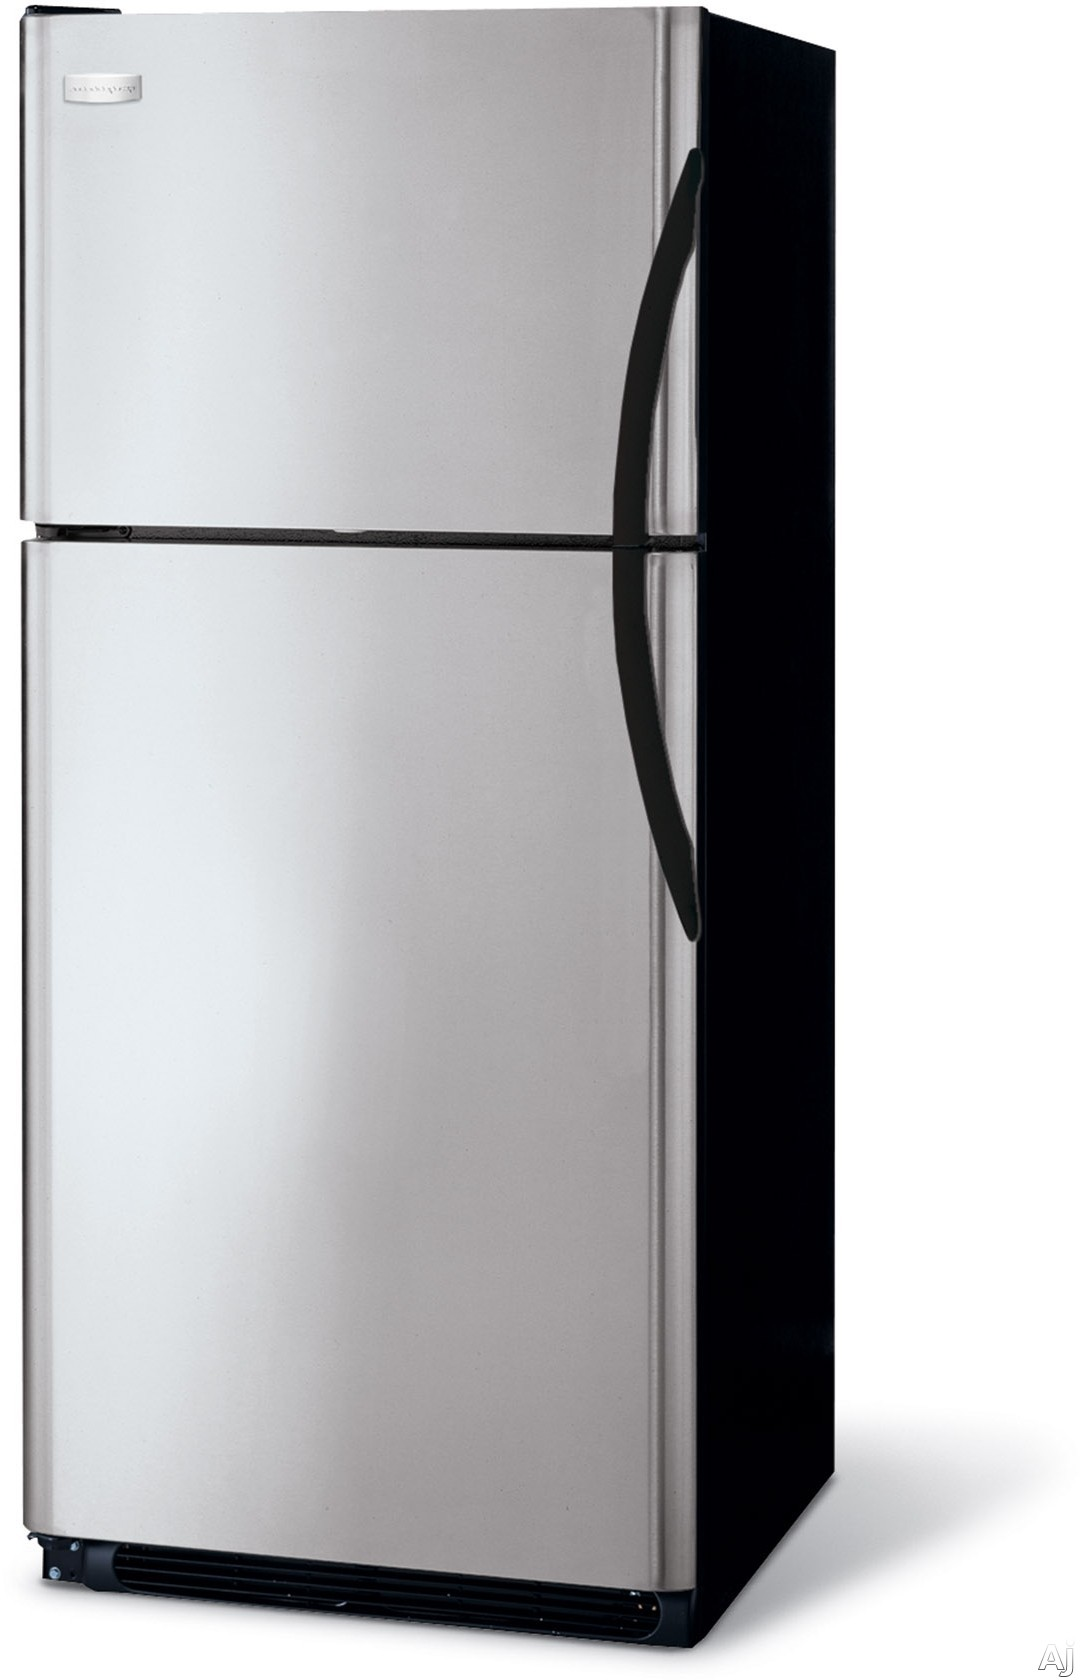 Frigidaire Freezers - Frigidaire FRT18S6JK 18.2 Cu Ft Top-Freezer  Refrigerator With 2 Sliding SpillSafe